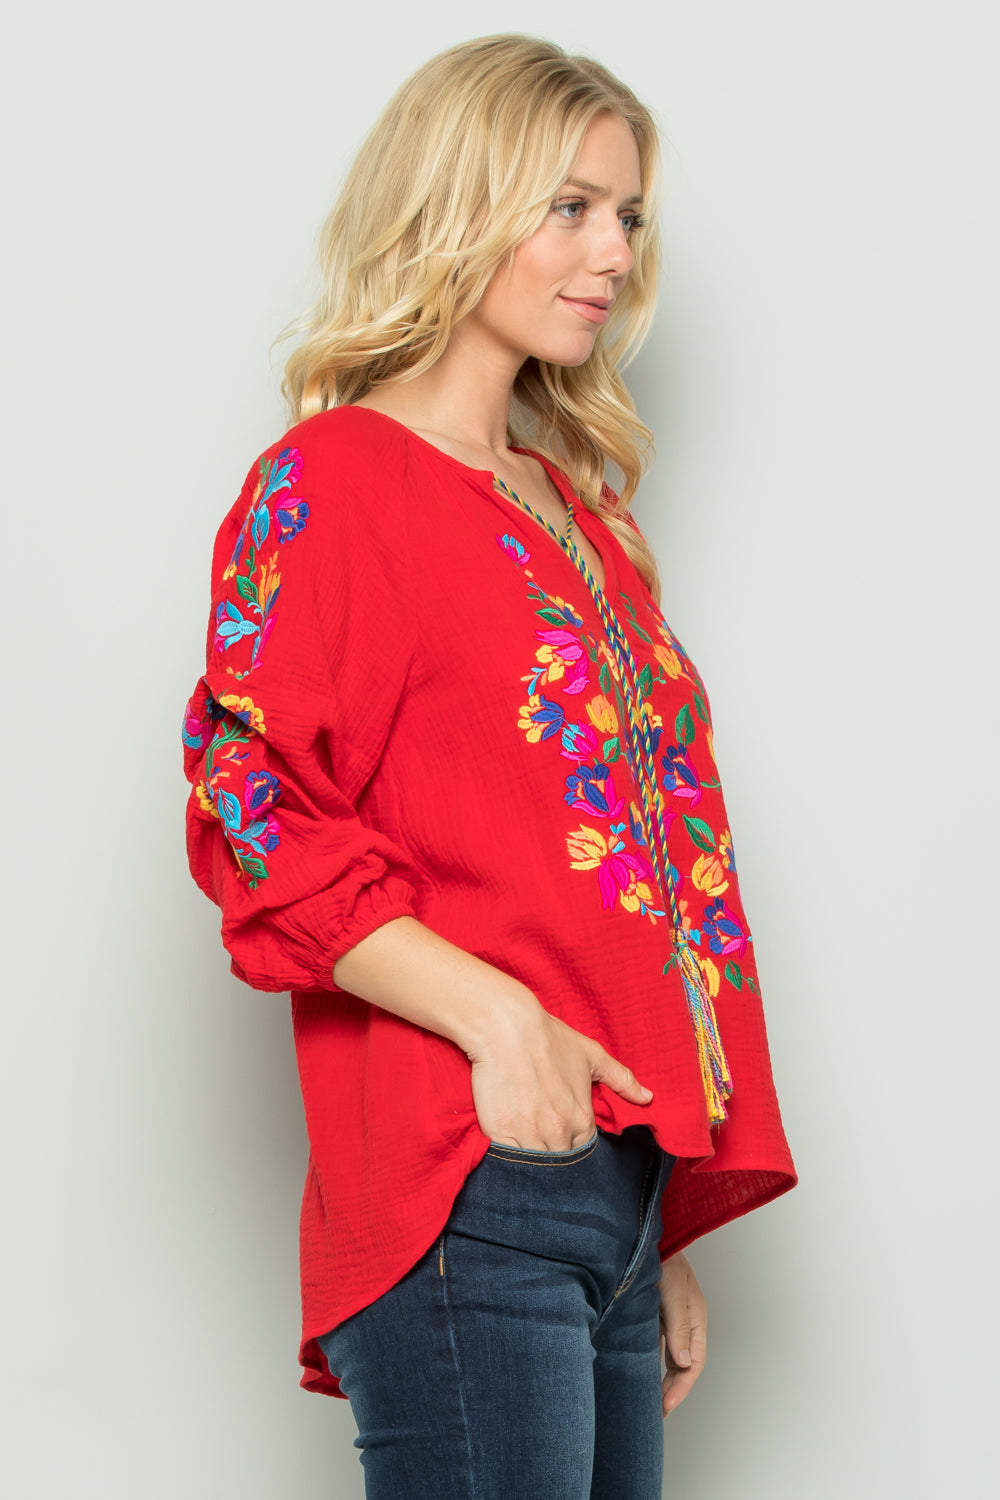 T2698 Floral Embroidery Top - White